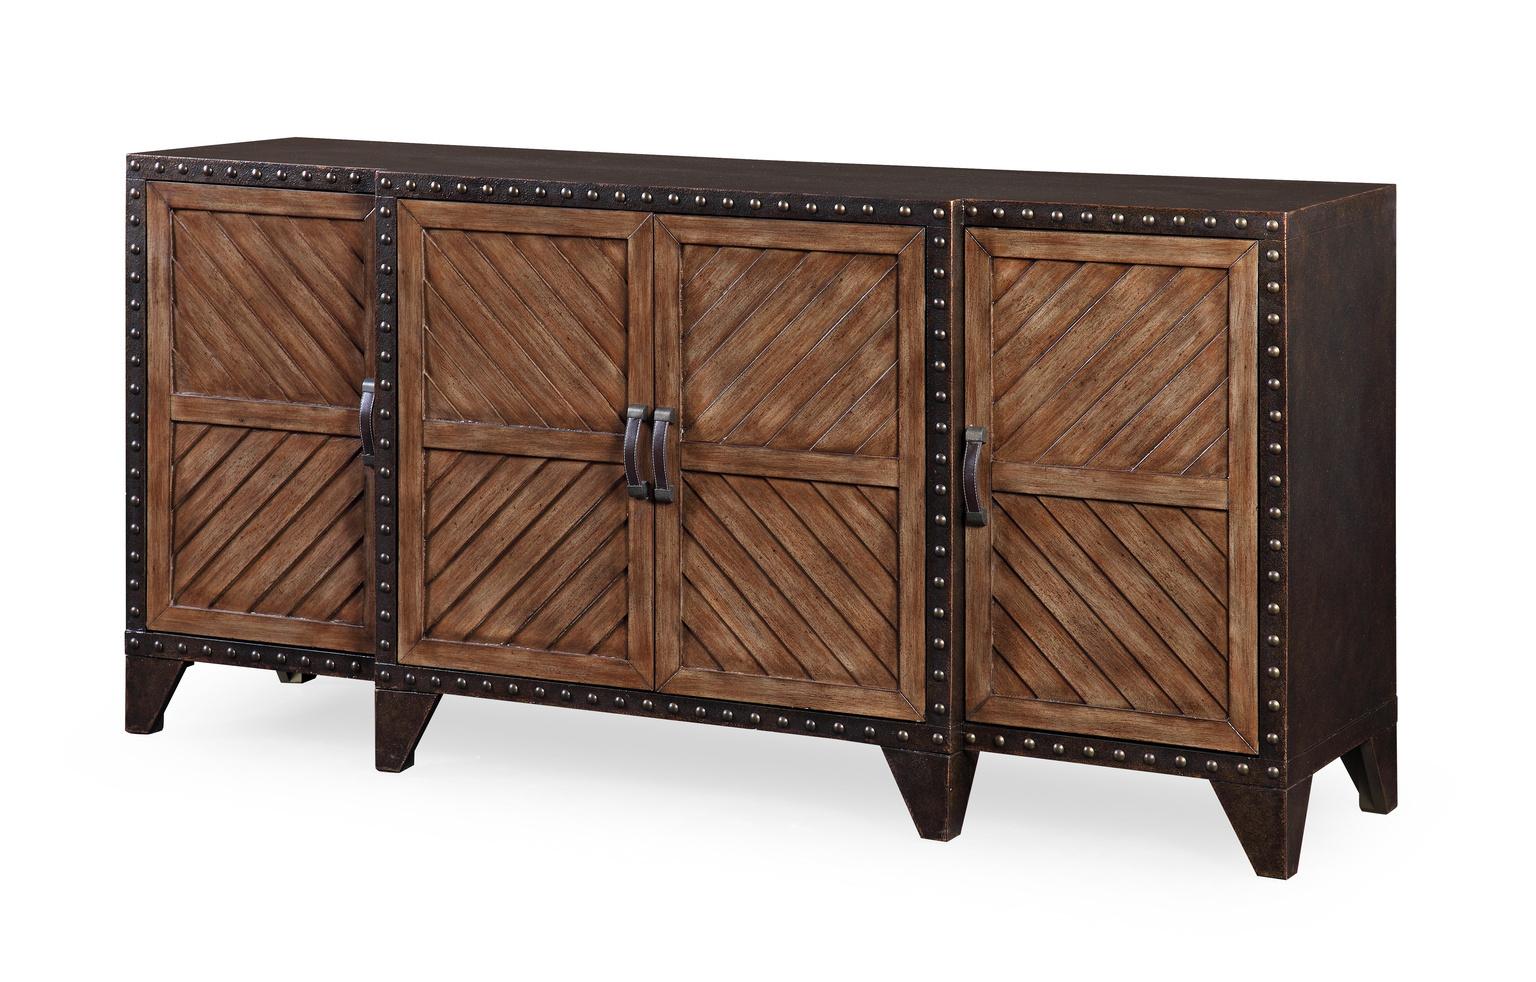 Popular Black Oak Wood And Wrought Iron Sideboards Throughout Sideboards, Cabinets, Shelving (Gallery 9 of 20)